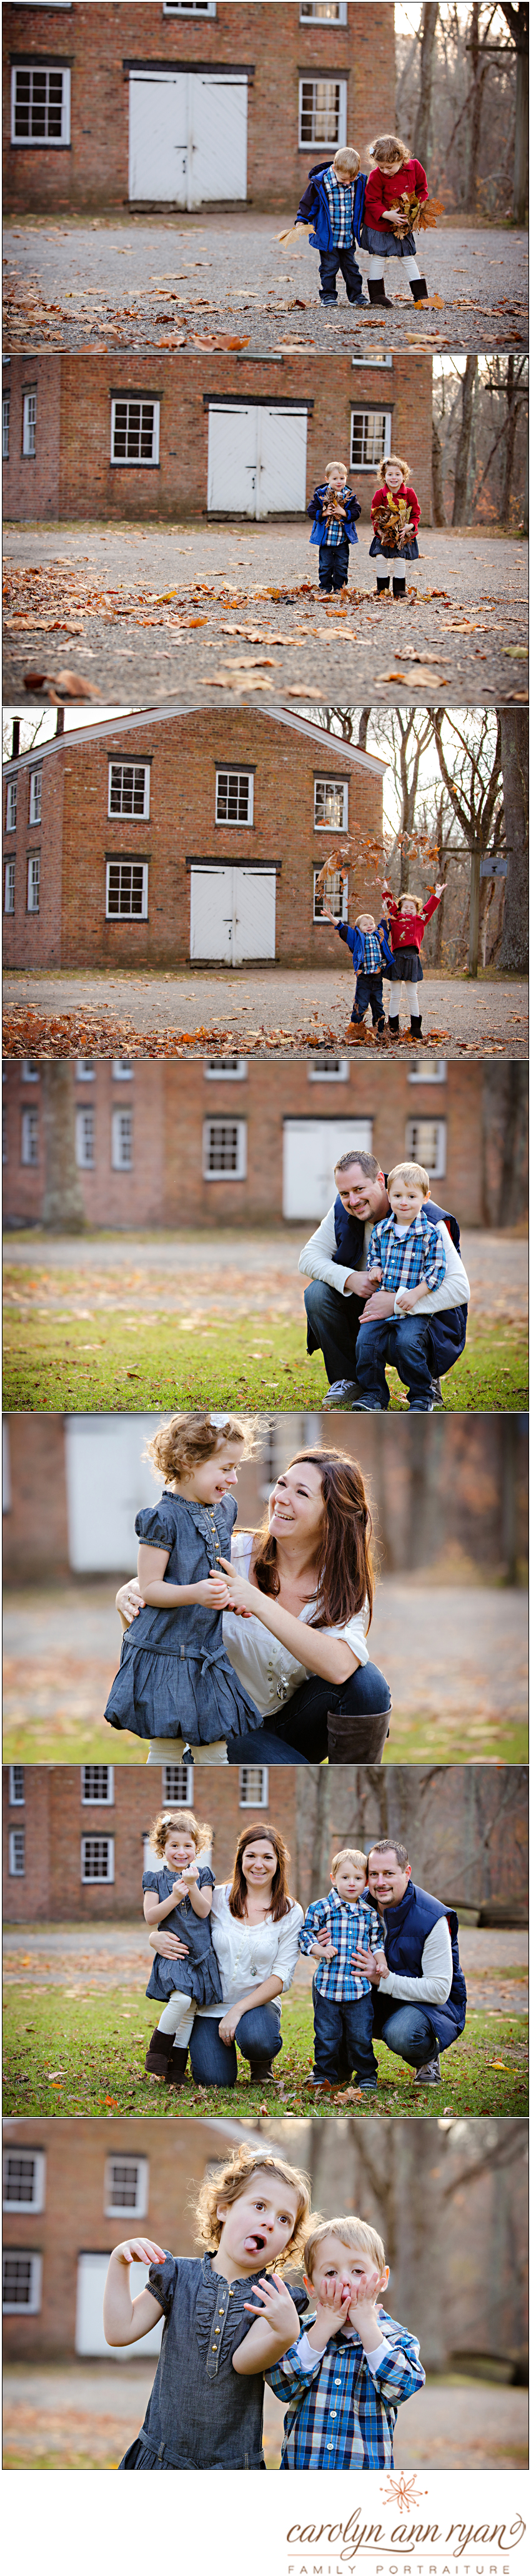 Marvin NC Family Photographer photographs warmhearted images of parents and children